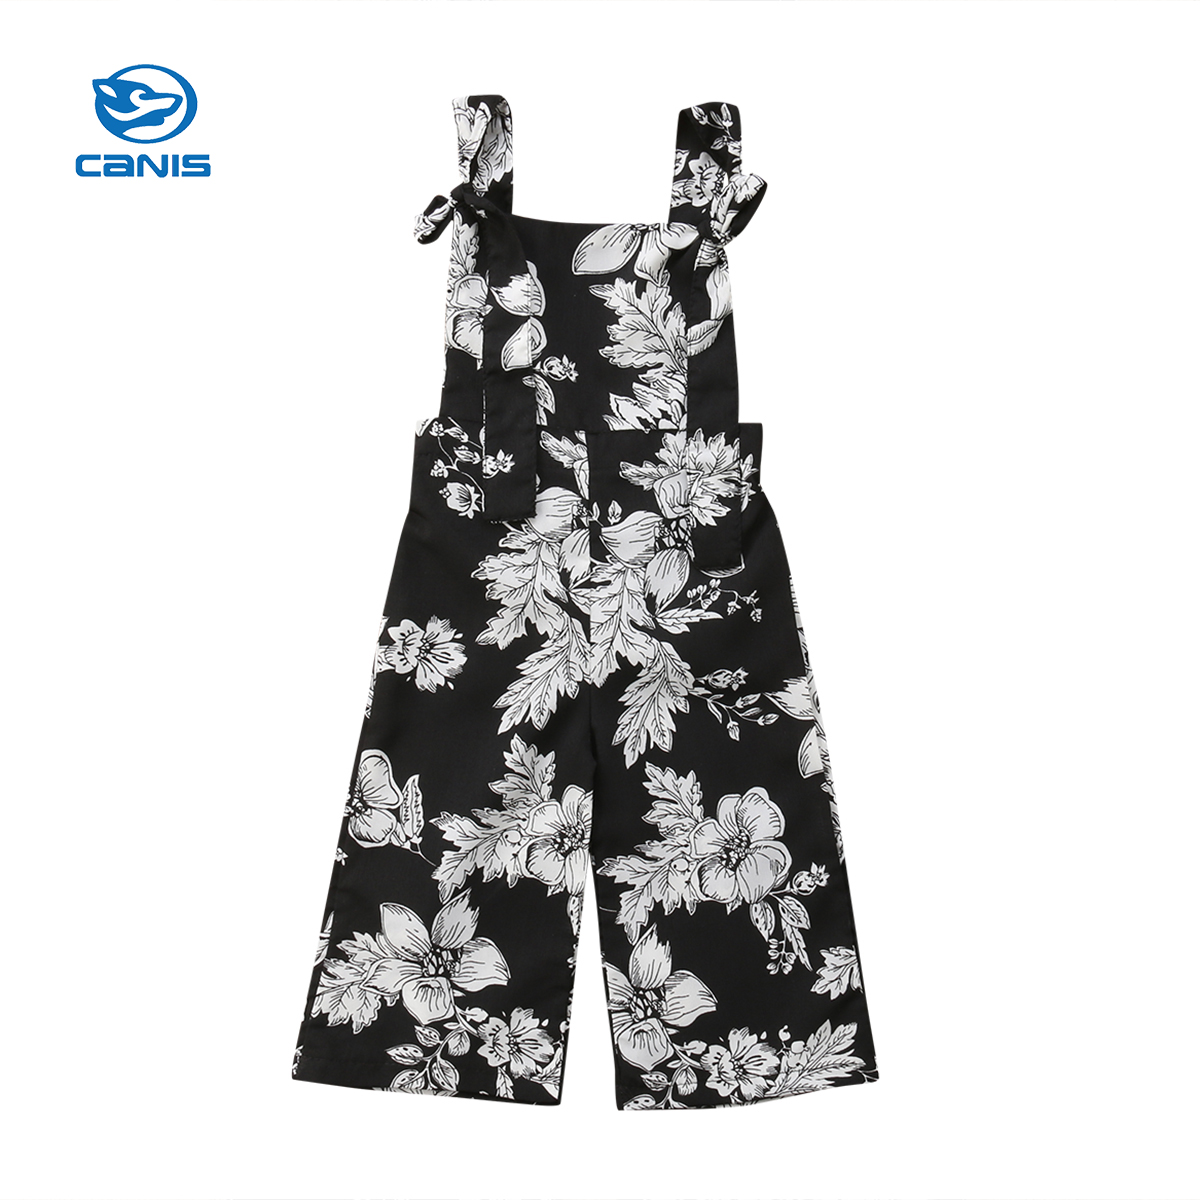 CANIS Kids Baby Girl Clothes Infant Newborn Kids Baby Girl Jumpsuit Cotton Romper Floral Kids Clothes Outfits 0-24M